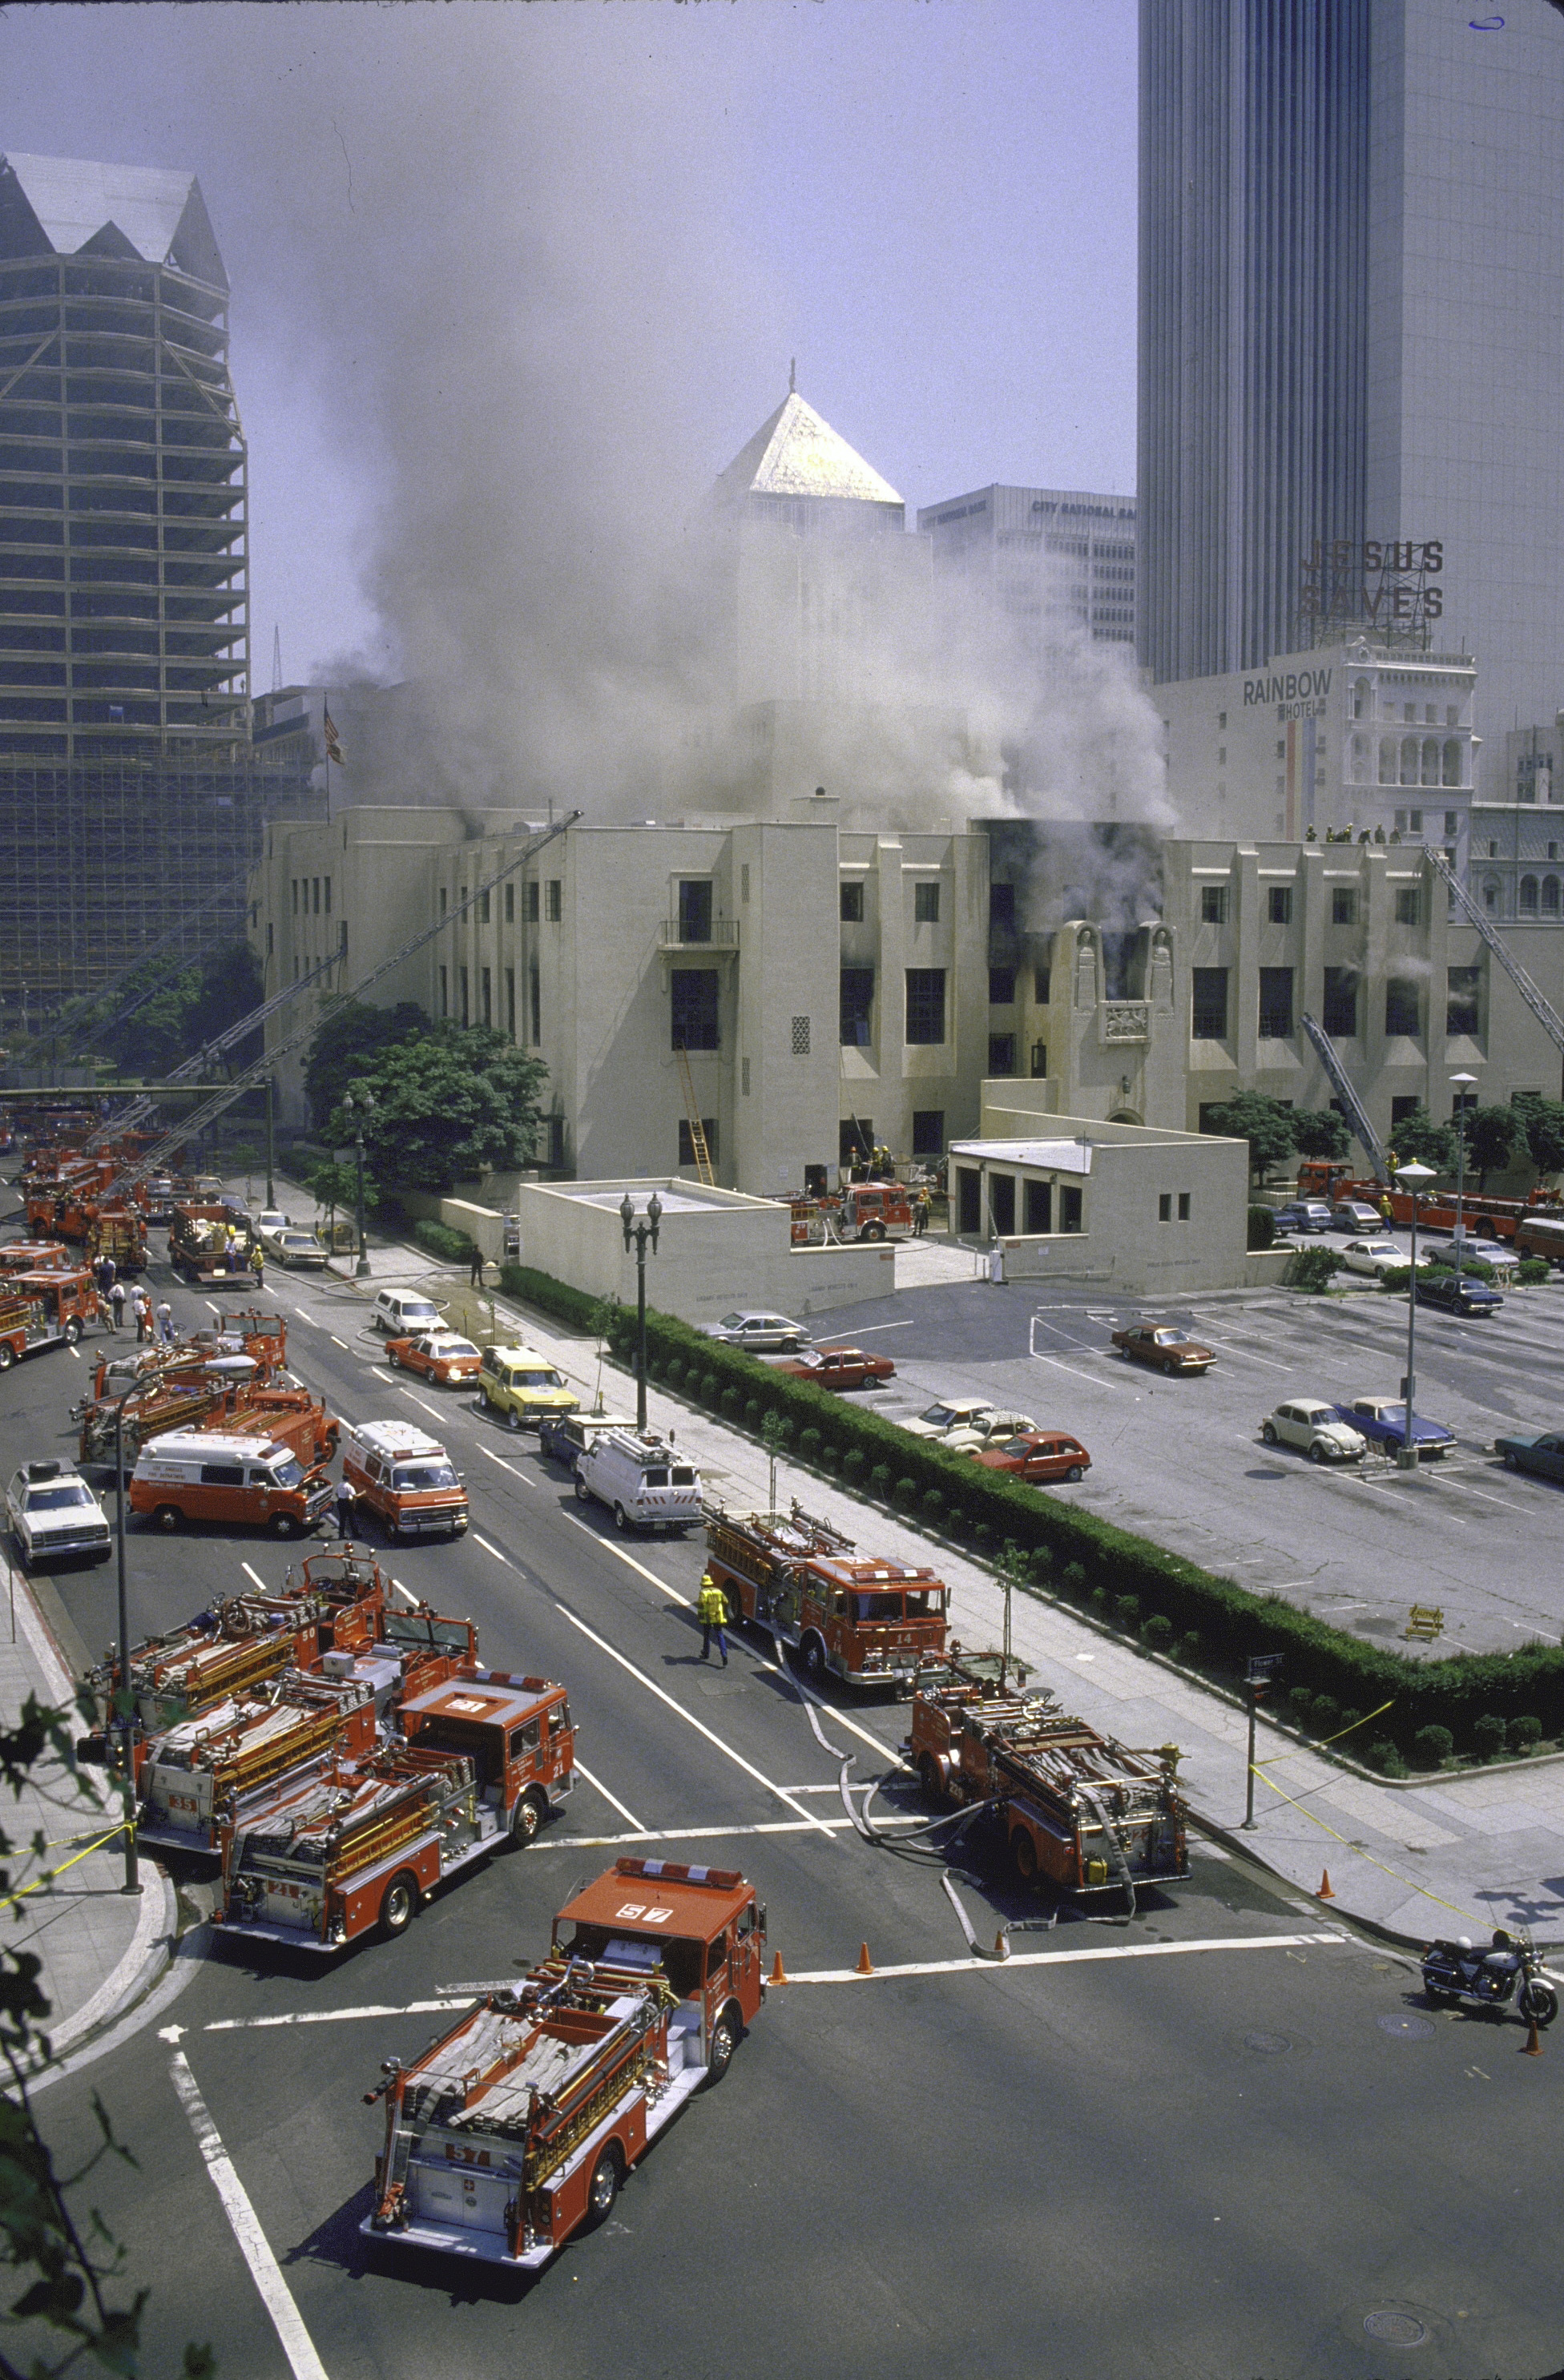 Mystery Of A Massive Library Fire Remains Unsolved After More Than 30 Years